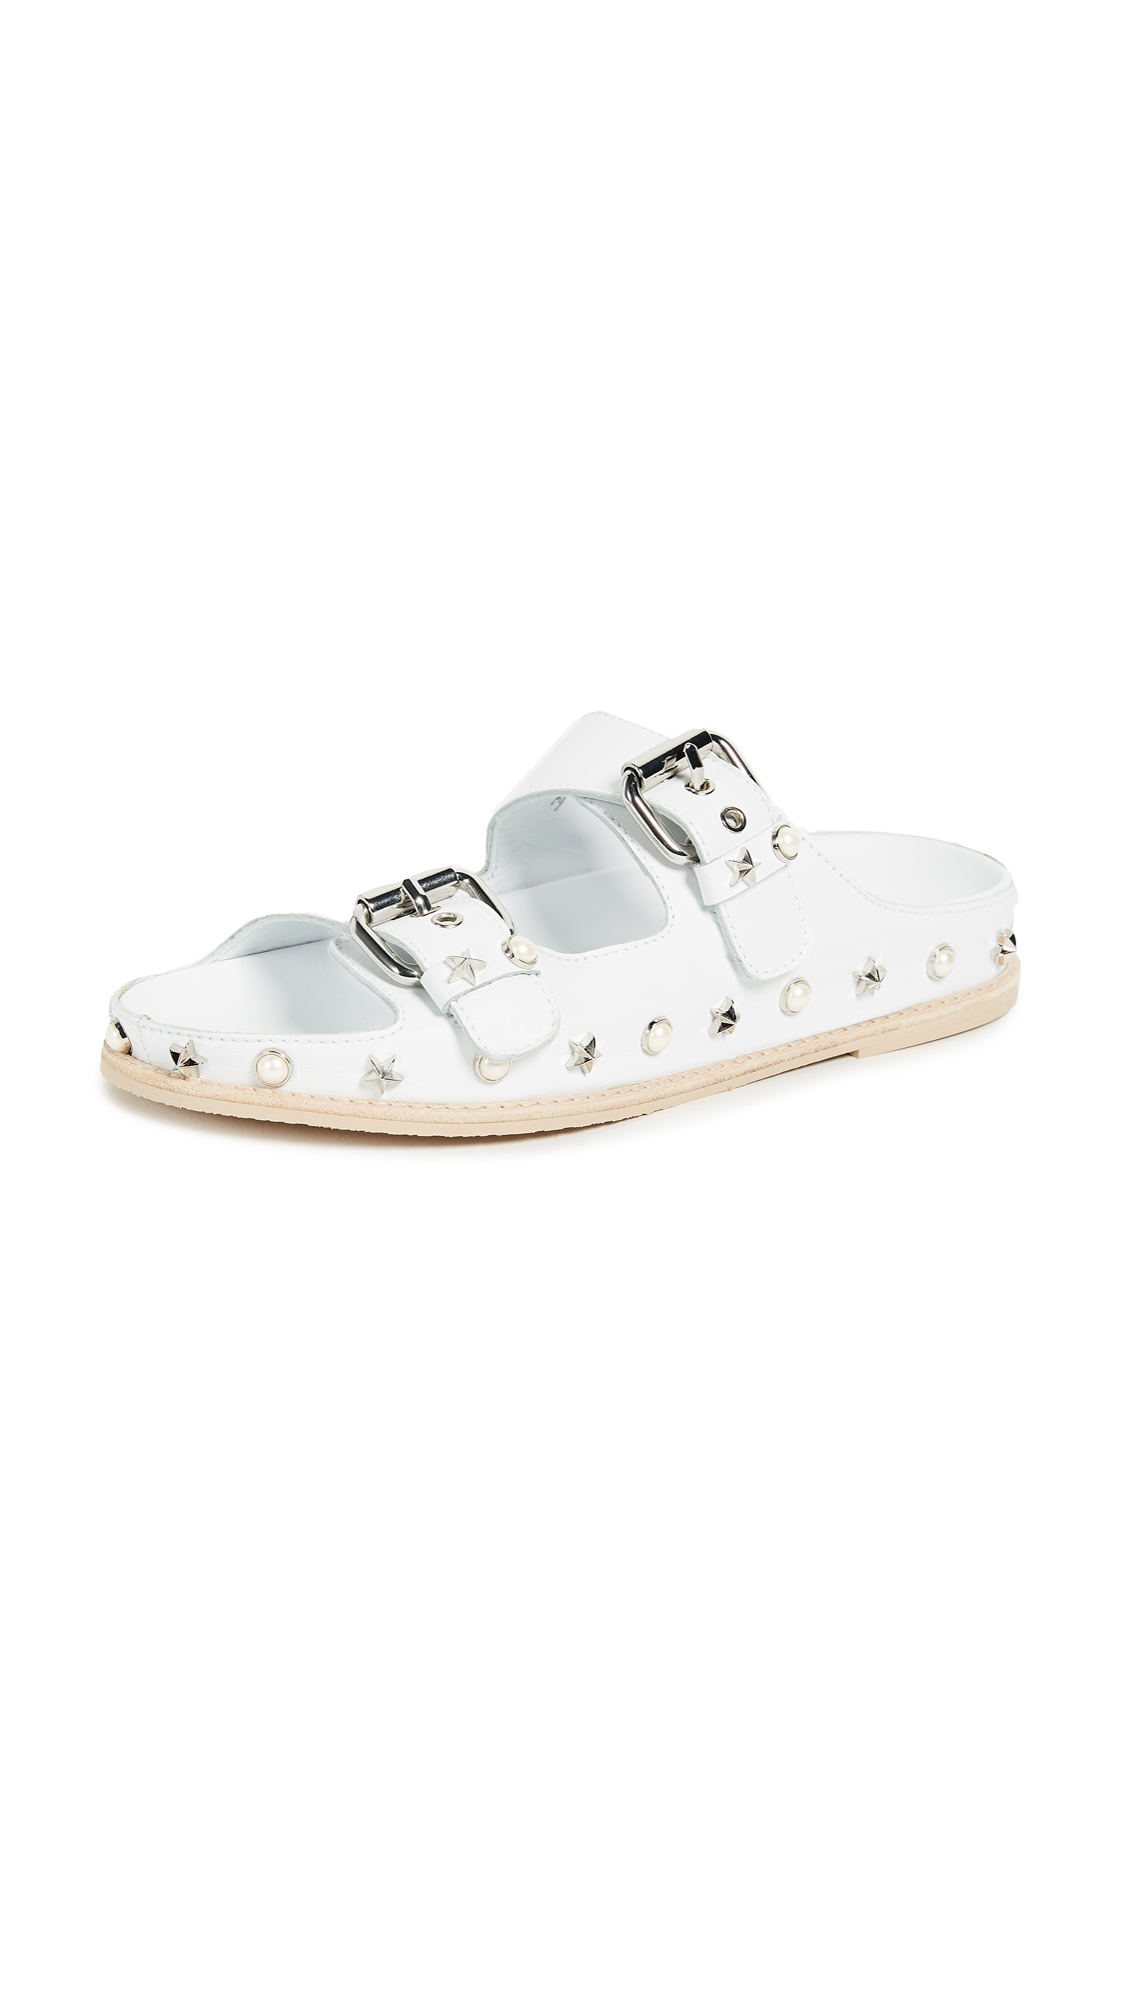 Stuart Weitzman Sandbar Sandals In White